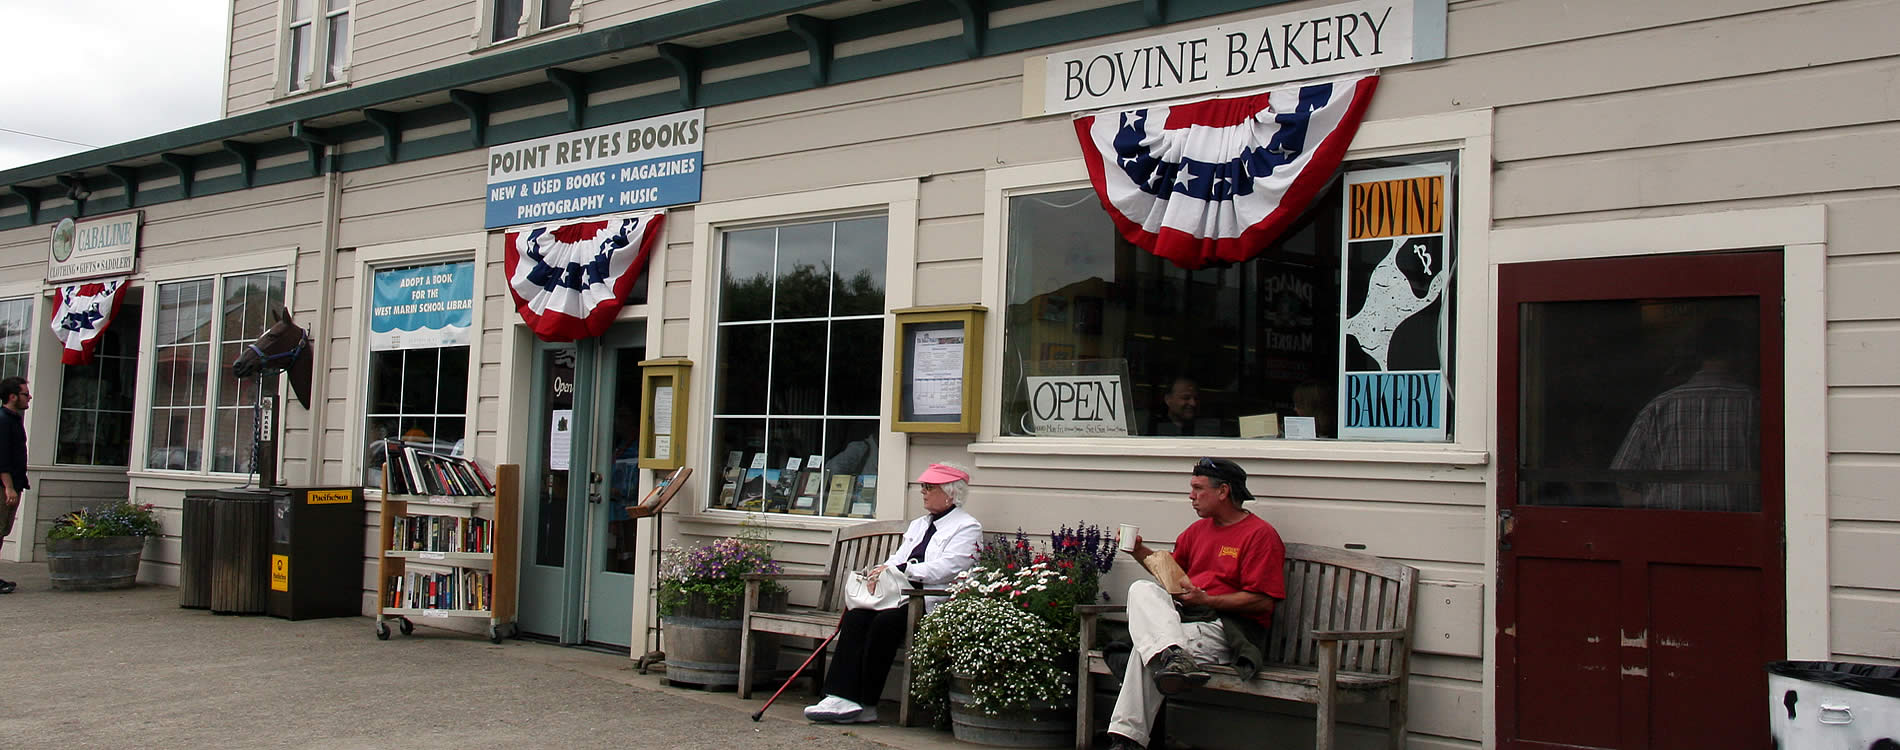 bookstore & bakery point reyes station pt reyes national seashore